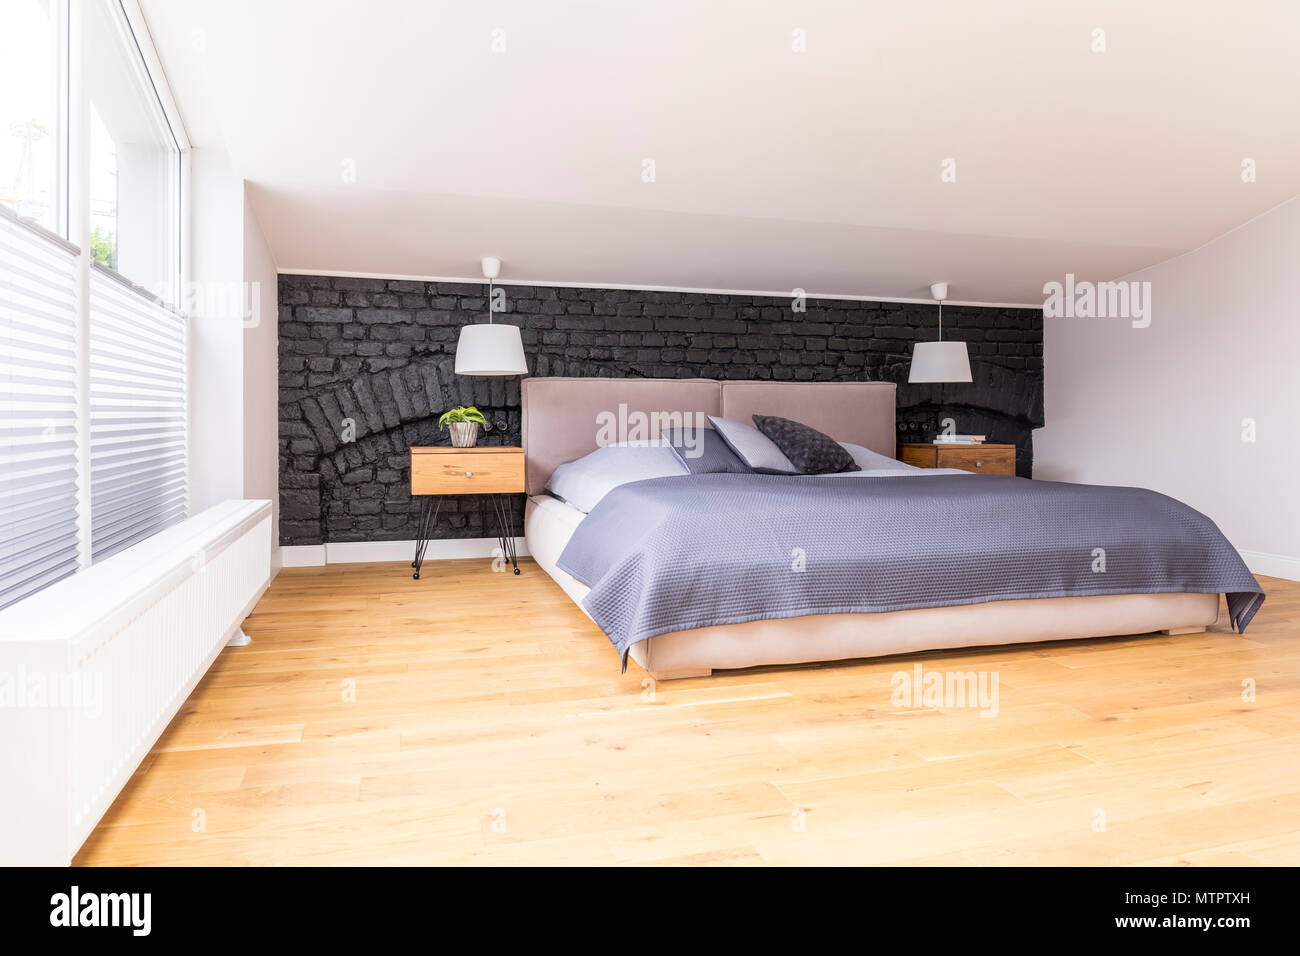 King-size bed with blue overlay in simple bedroom with black brick ...